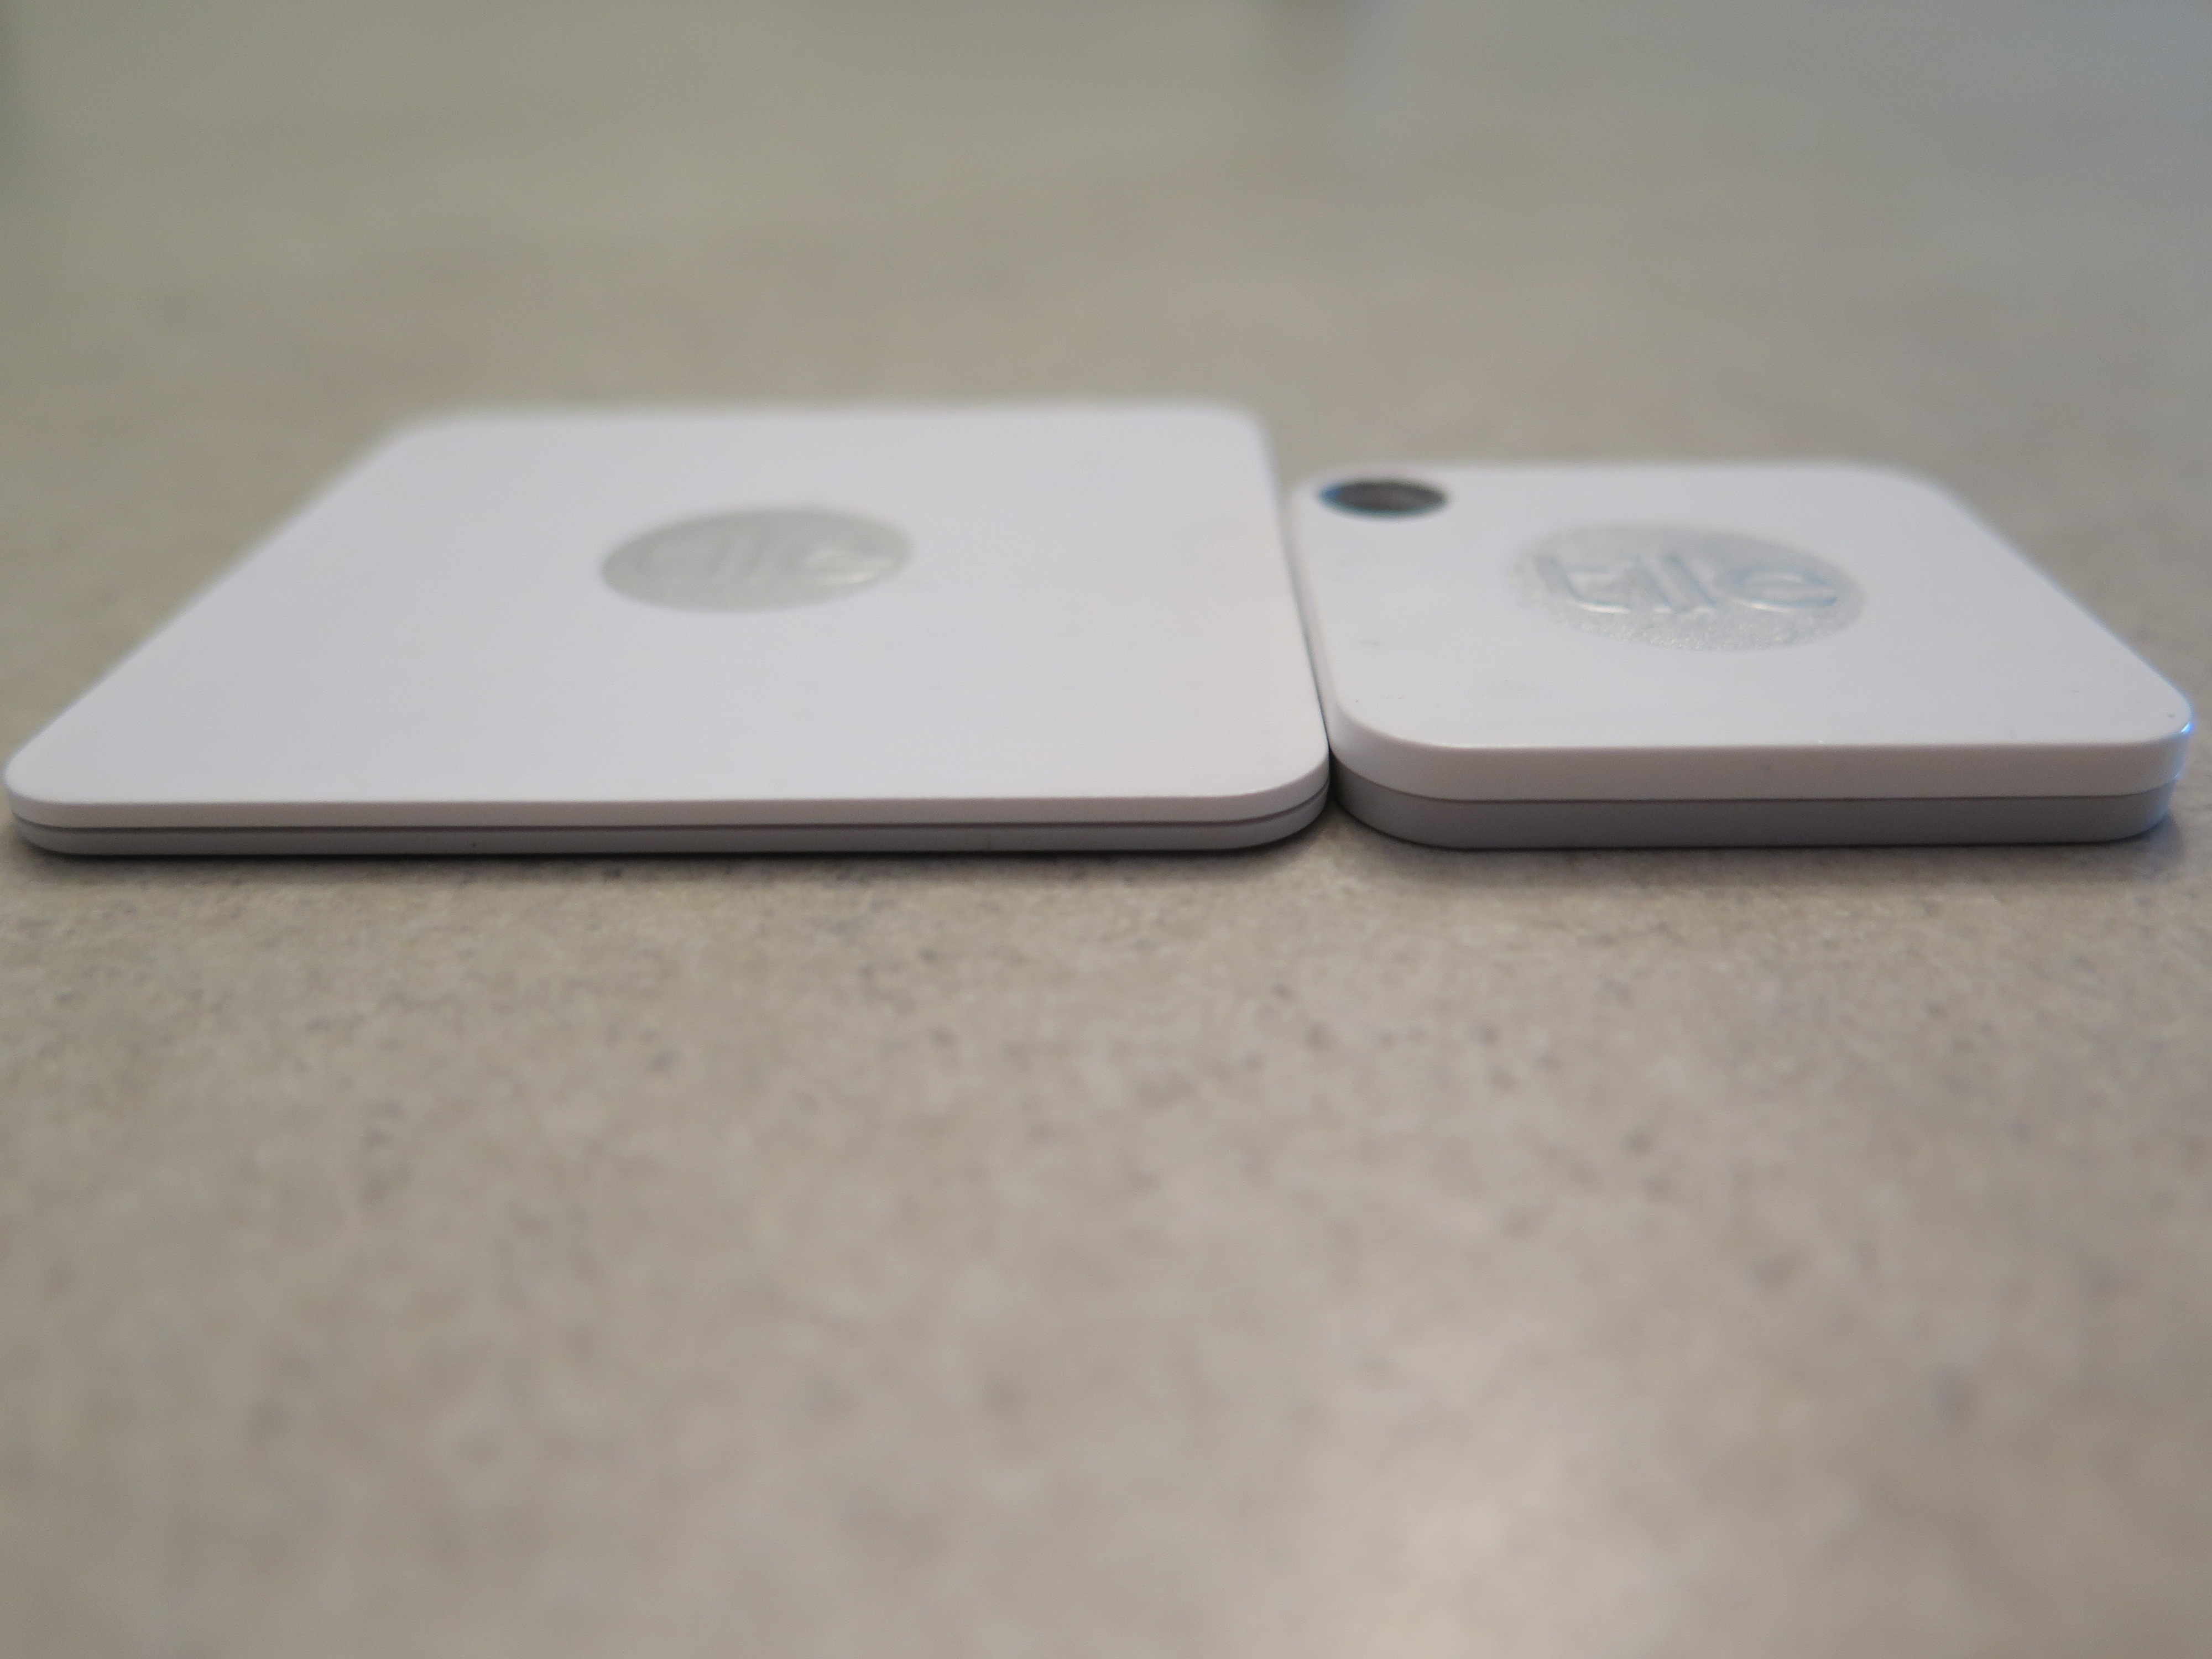 Tile Mate And Tile Slim Make Losing Your Items A Thing Of